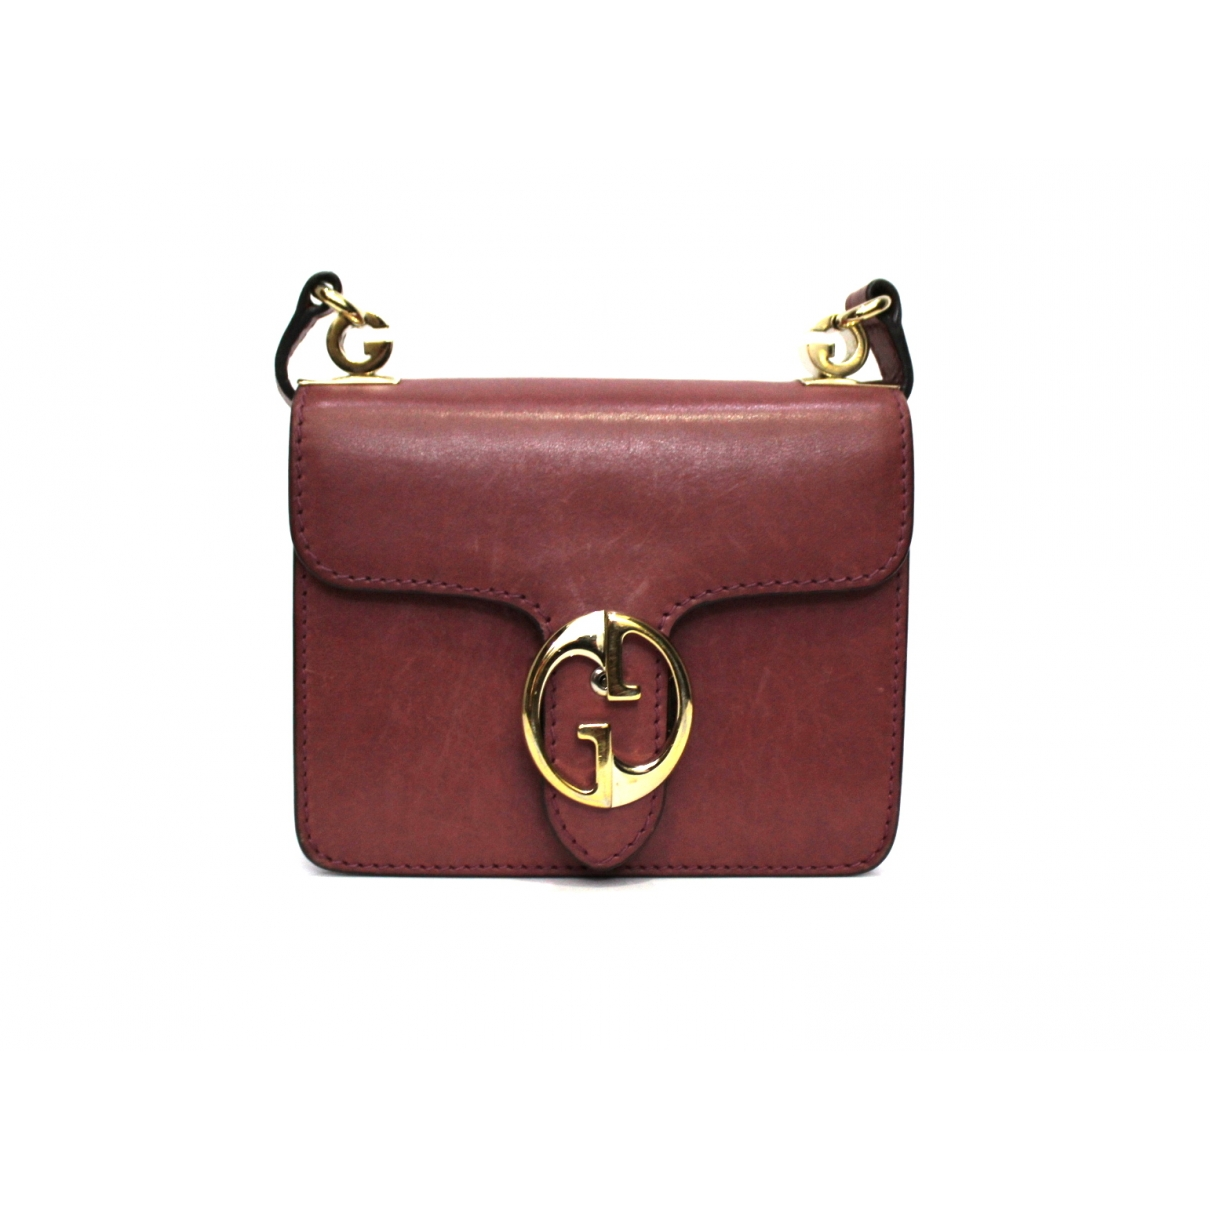 Gucci 1973 Pink Leather handbag for Women \N